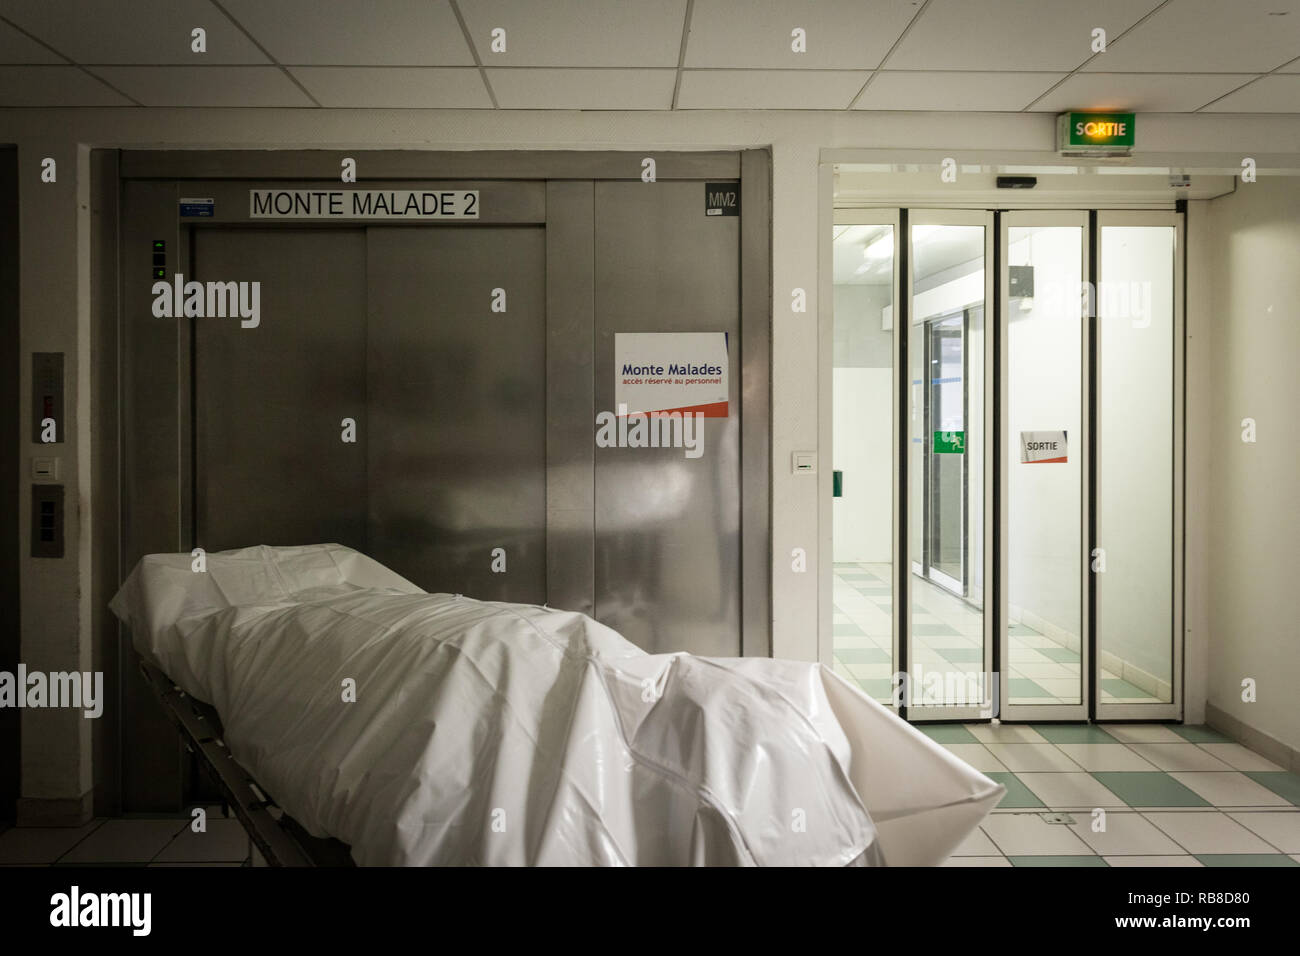 working on a dead body in a mortuary room in an hospital RB8D80 - How To Get A Job In The Hospital Morgue